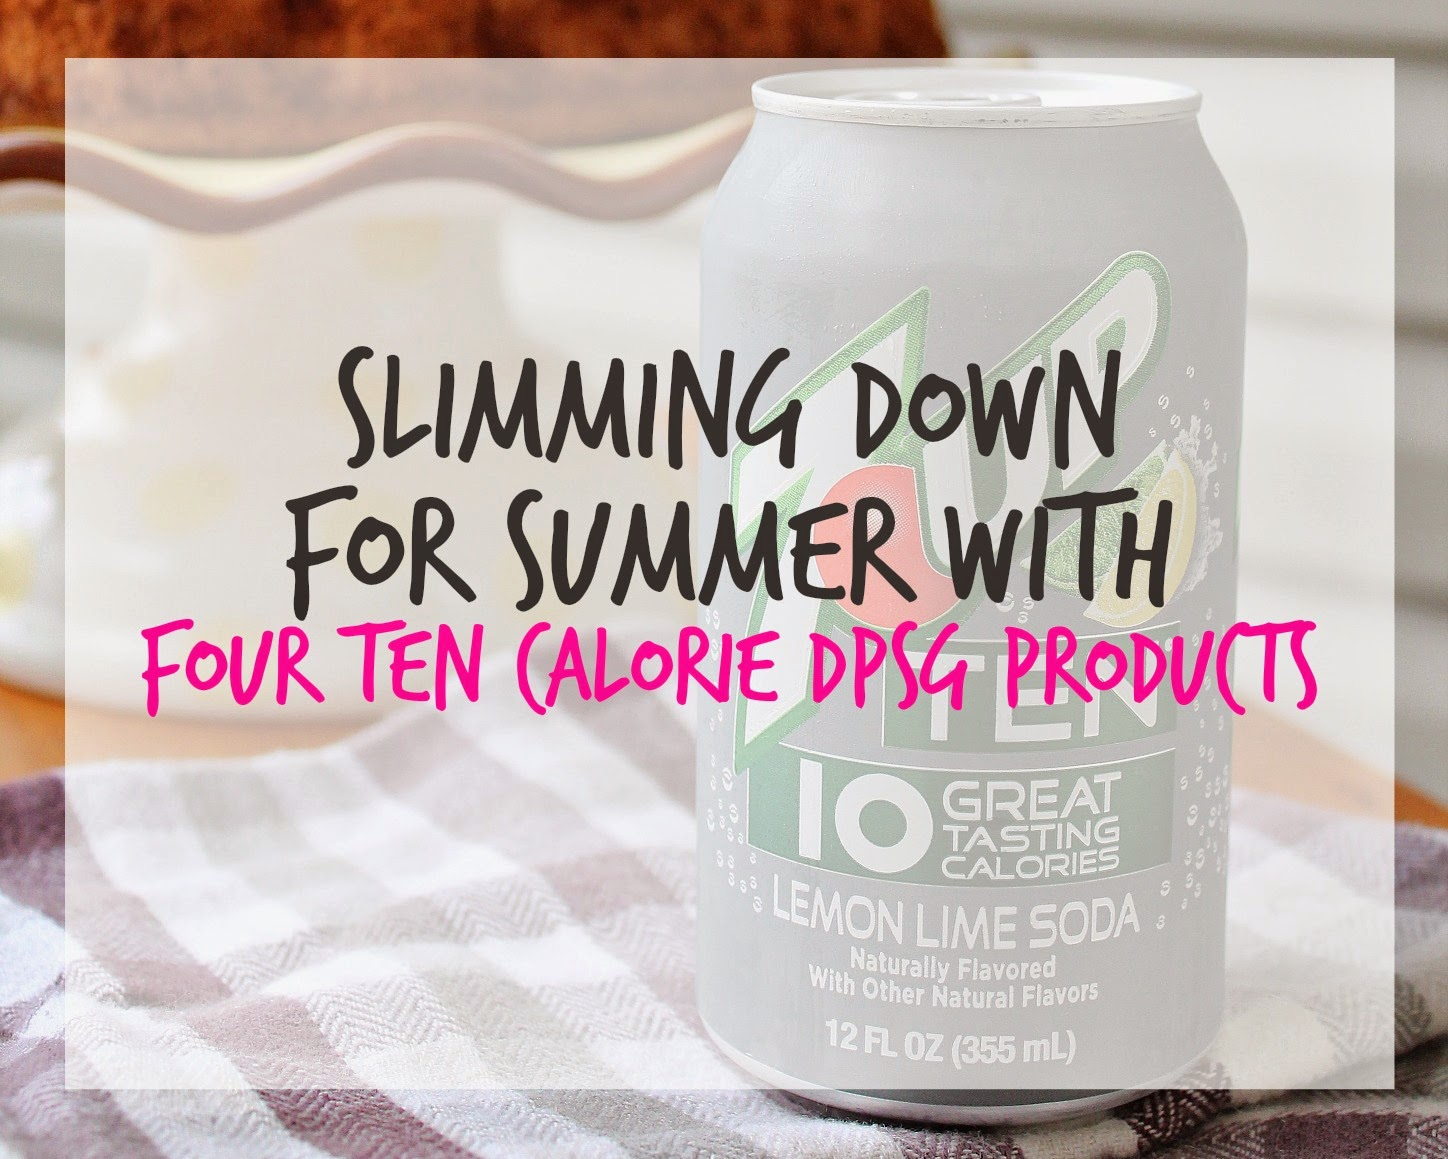 Slimming Down for Summer with DPSG Core Four Ten Products